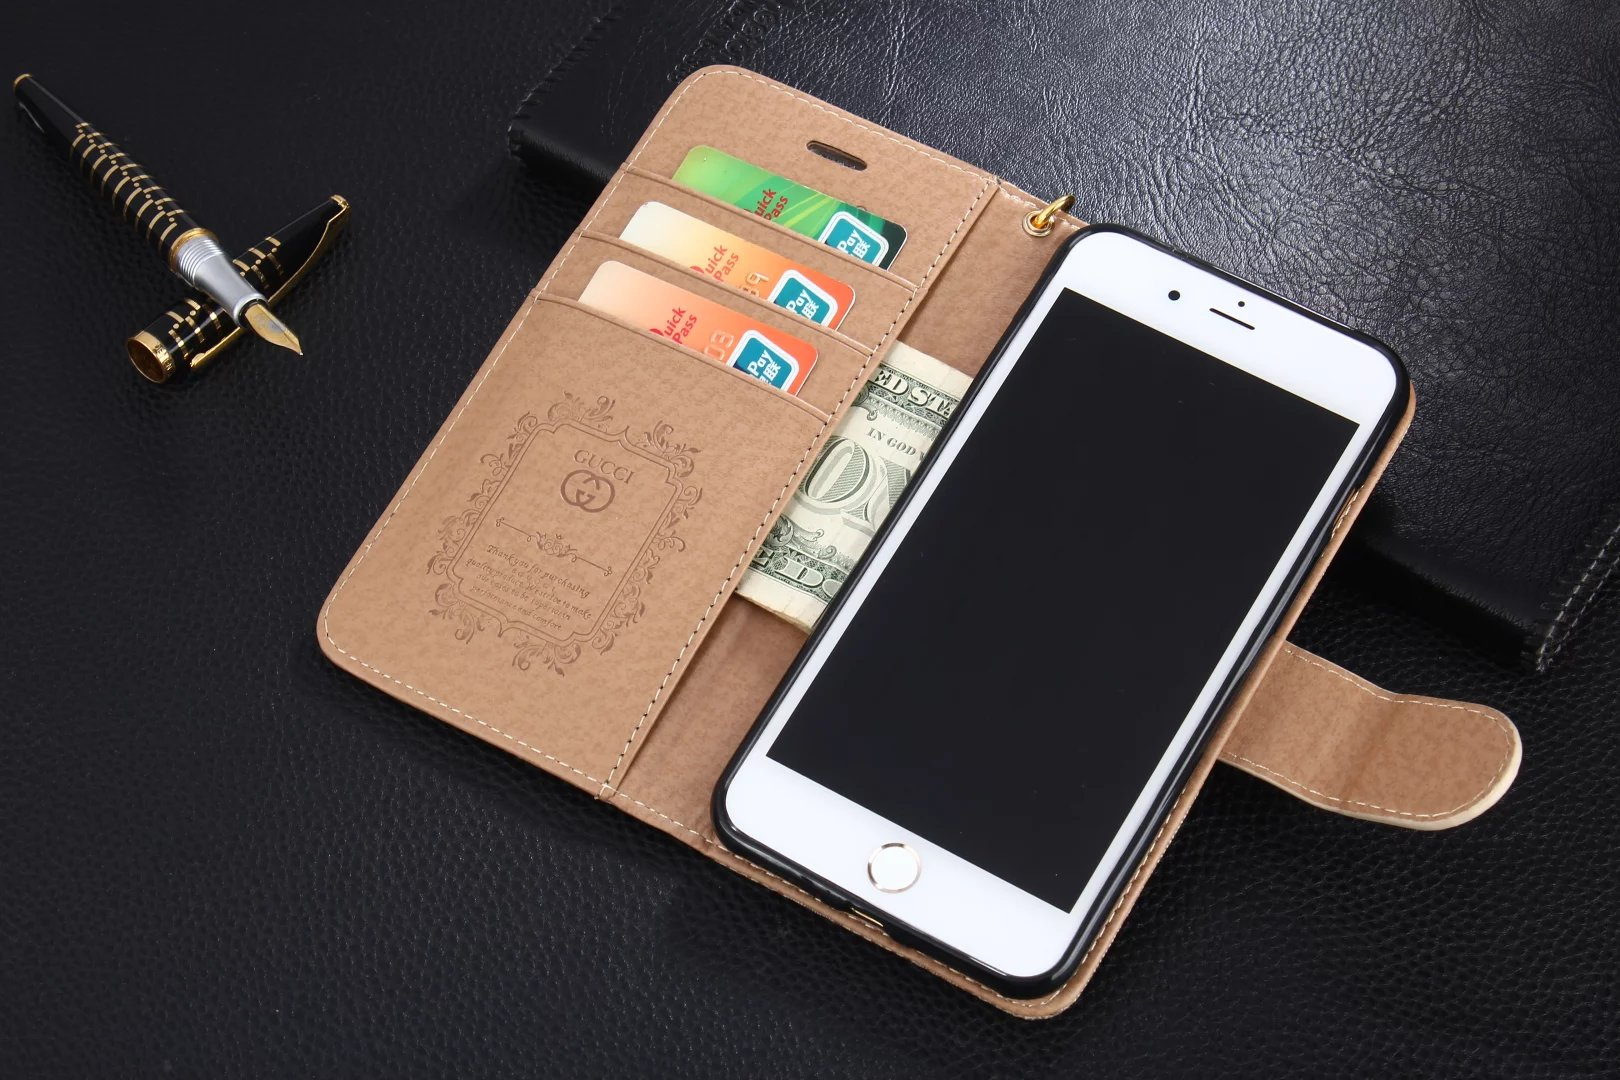 designer iphone cases 8 protective iphone 8 cases Louis Vuitton iphone 8 case cool cell phone covers iphone 8 case shop cell covers for iphone iphone 8 leather case mophie wiki case pack